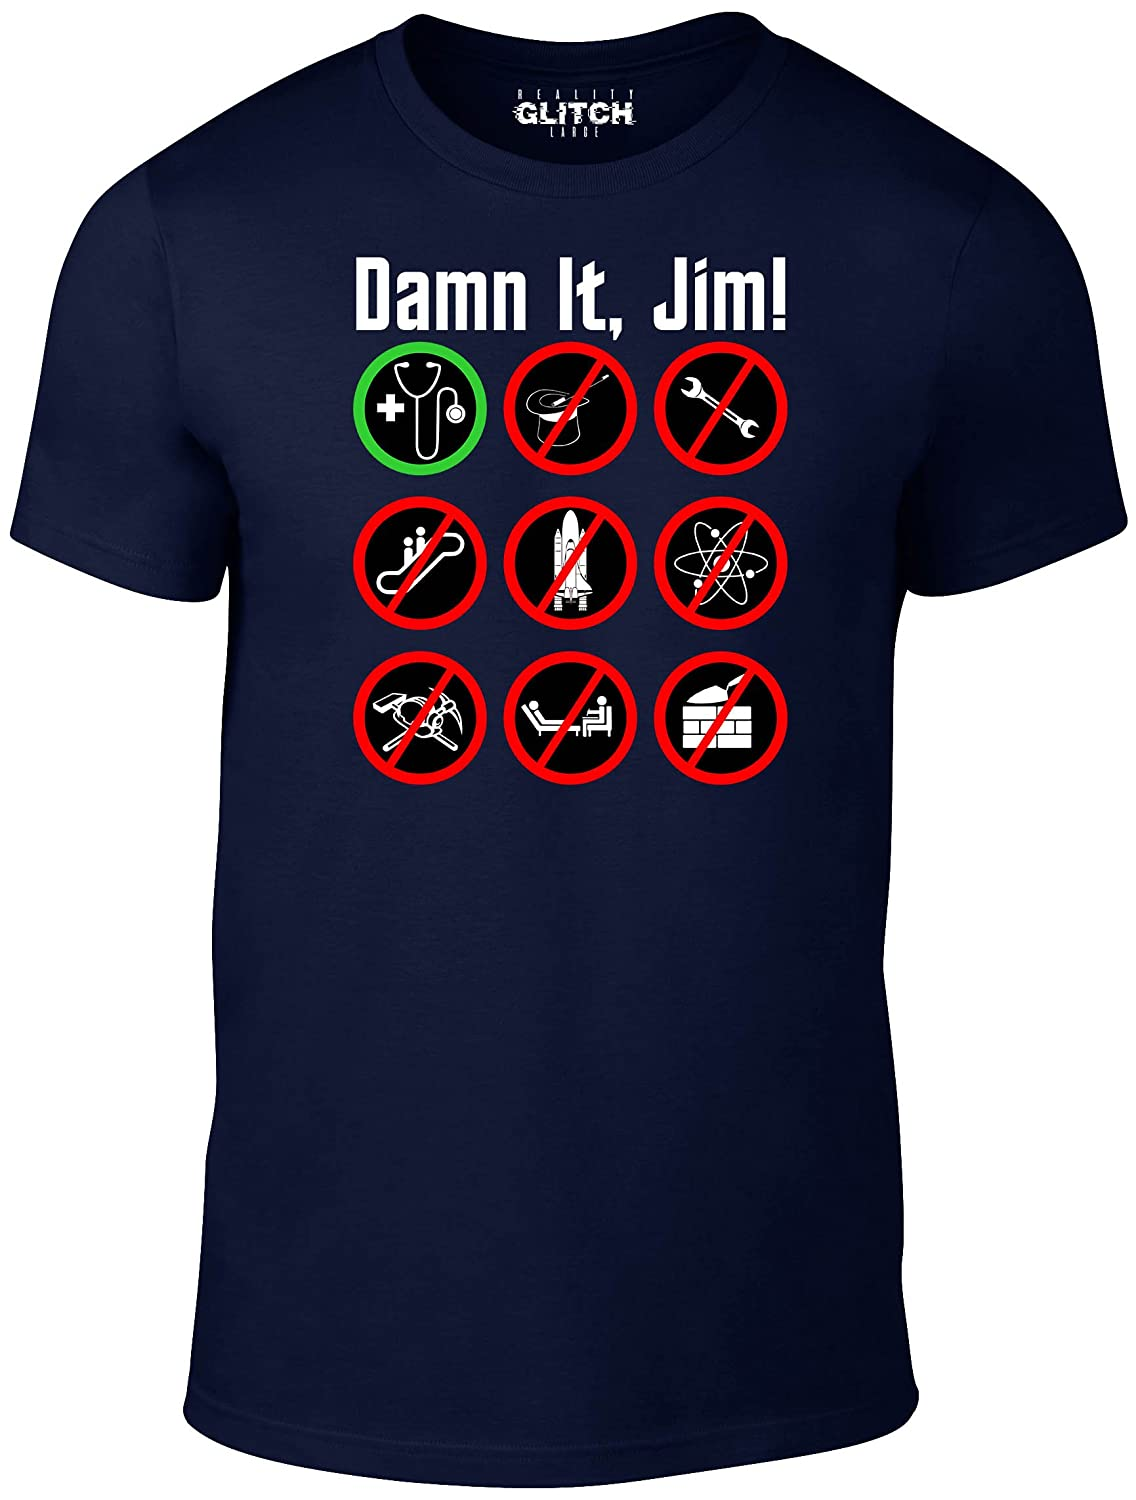 Reality Glitch Men's Damn It Jim T-Shirt